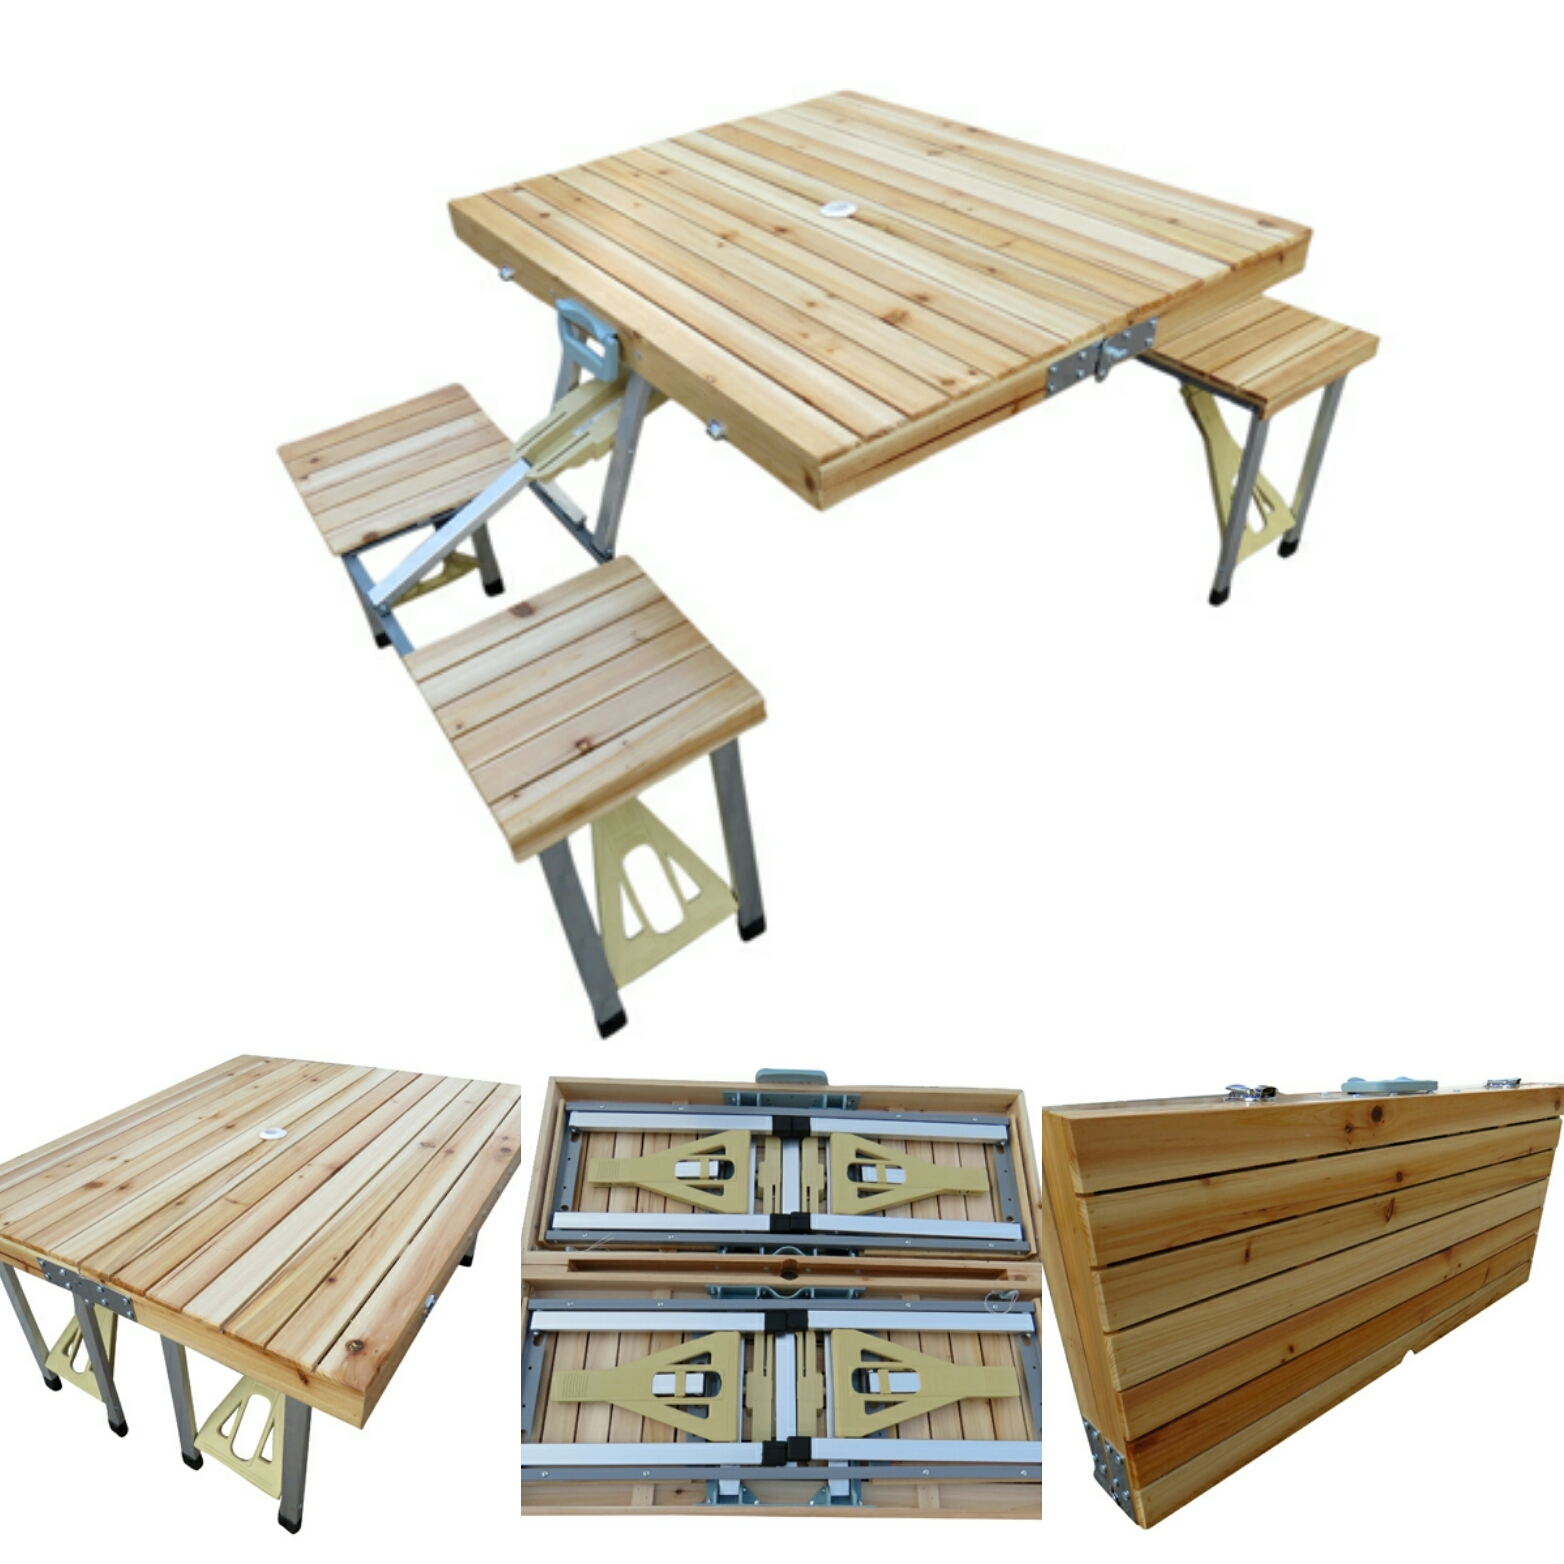 Picture of: Aluminium 85 X 72 5 X 68 Cm Folding Picnic Table Wooden Top 8827 Rs 5500 Piece Id 15925010973